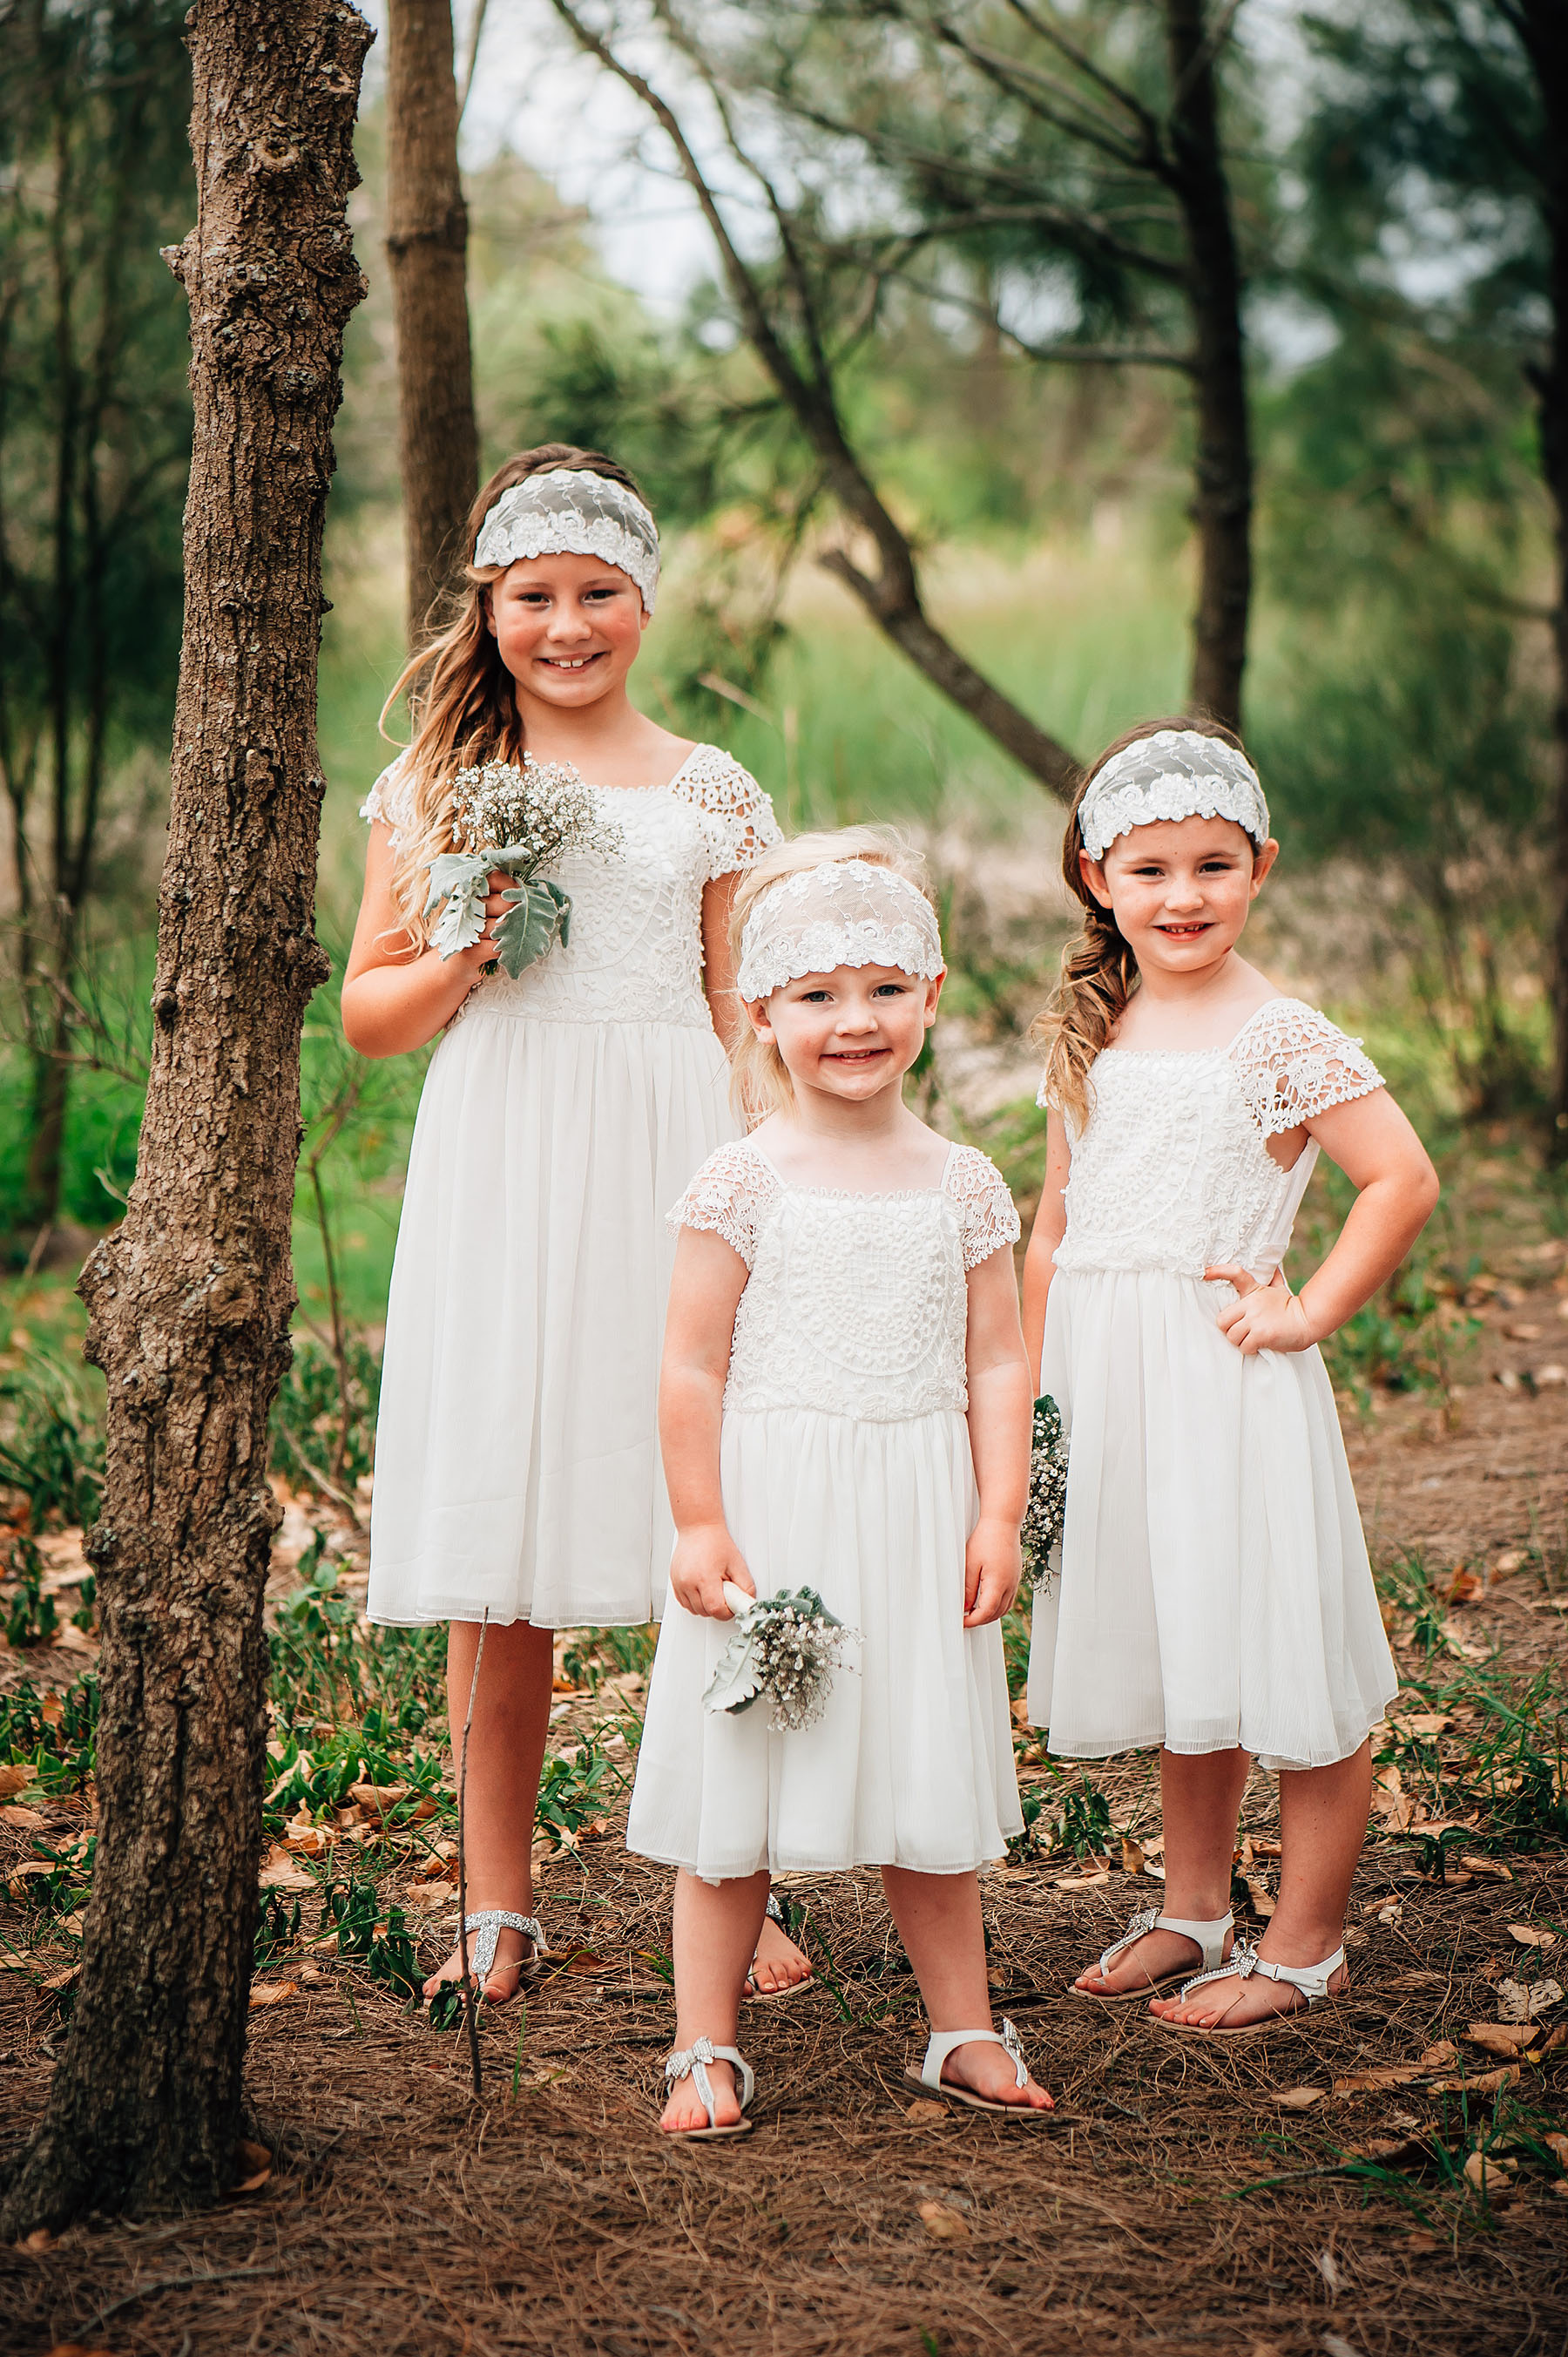 Marryme_wedding_photography_dorrigo_bellingen_photographer_18.jpg